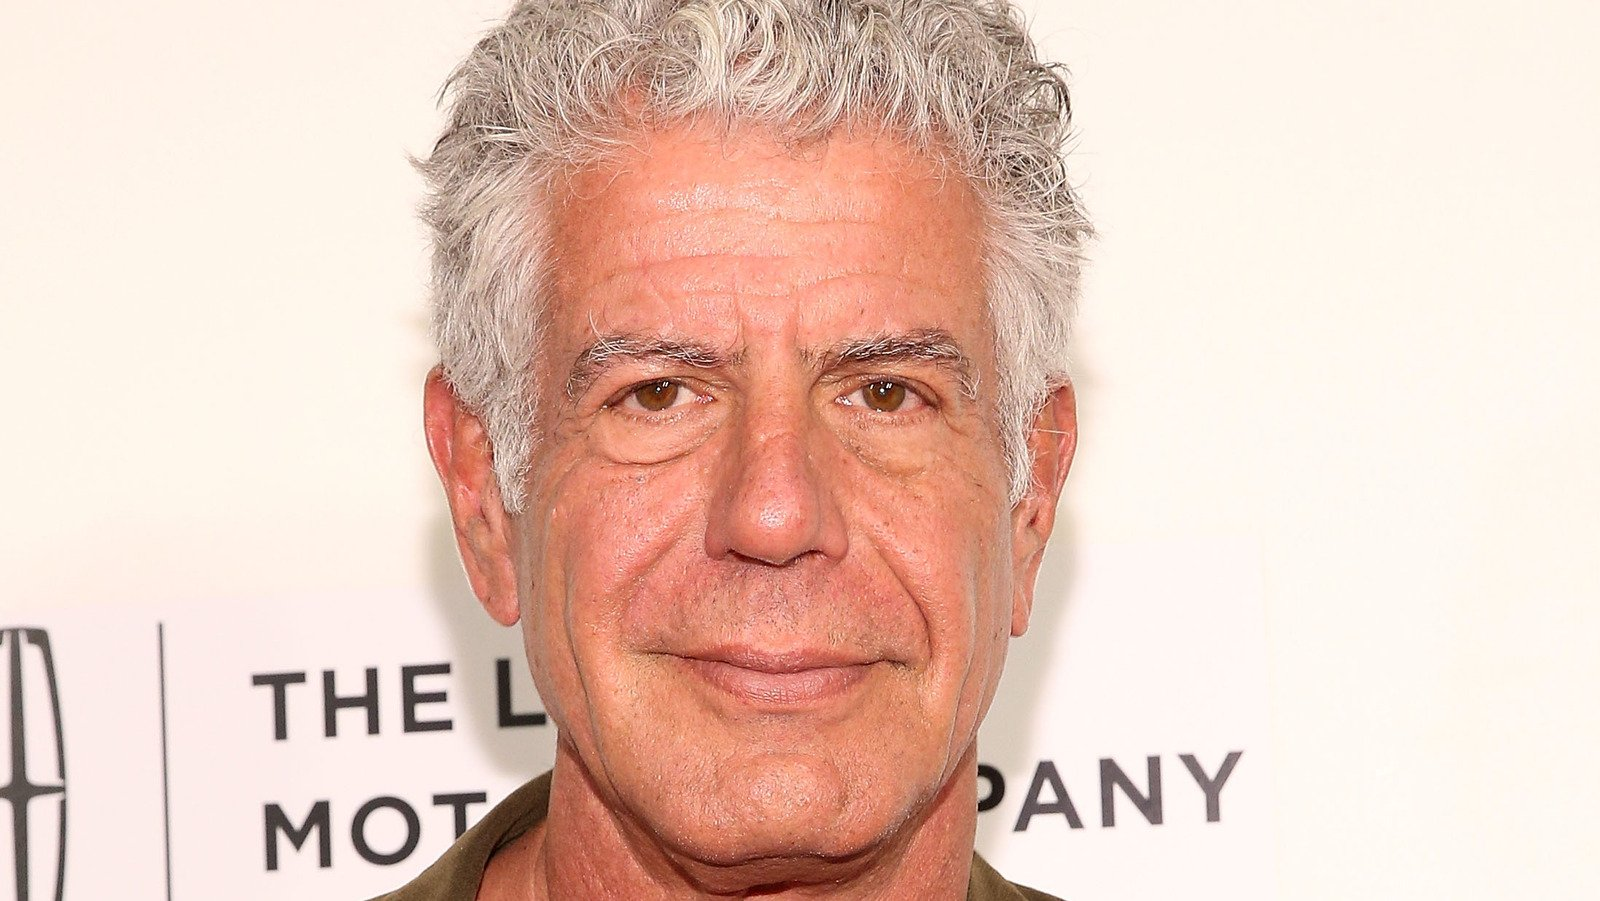 How Anthony Bourdain Changed The Way People Looked At Food